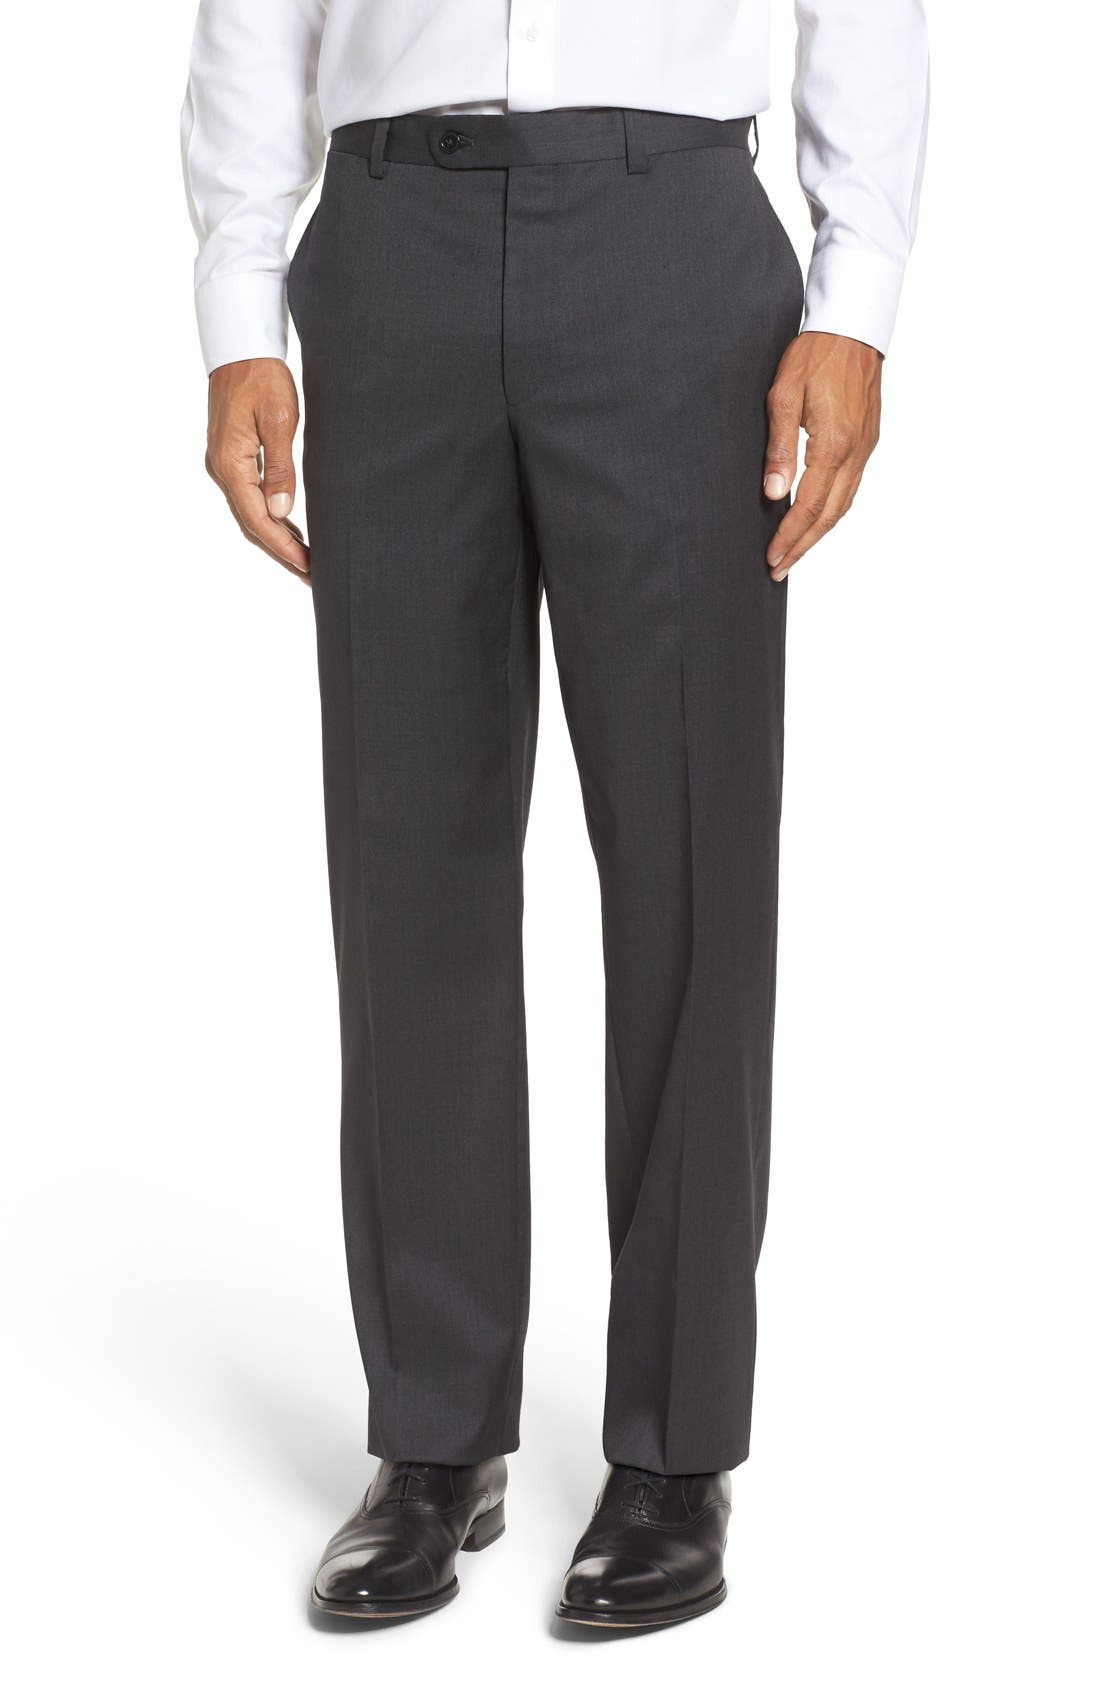 RIVIERA Flat Front Solid Wool Trousers, Main, color, 010